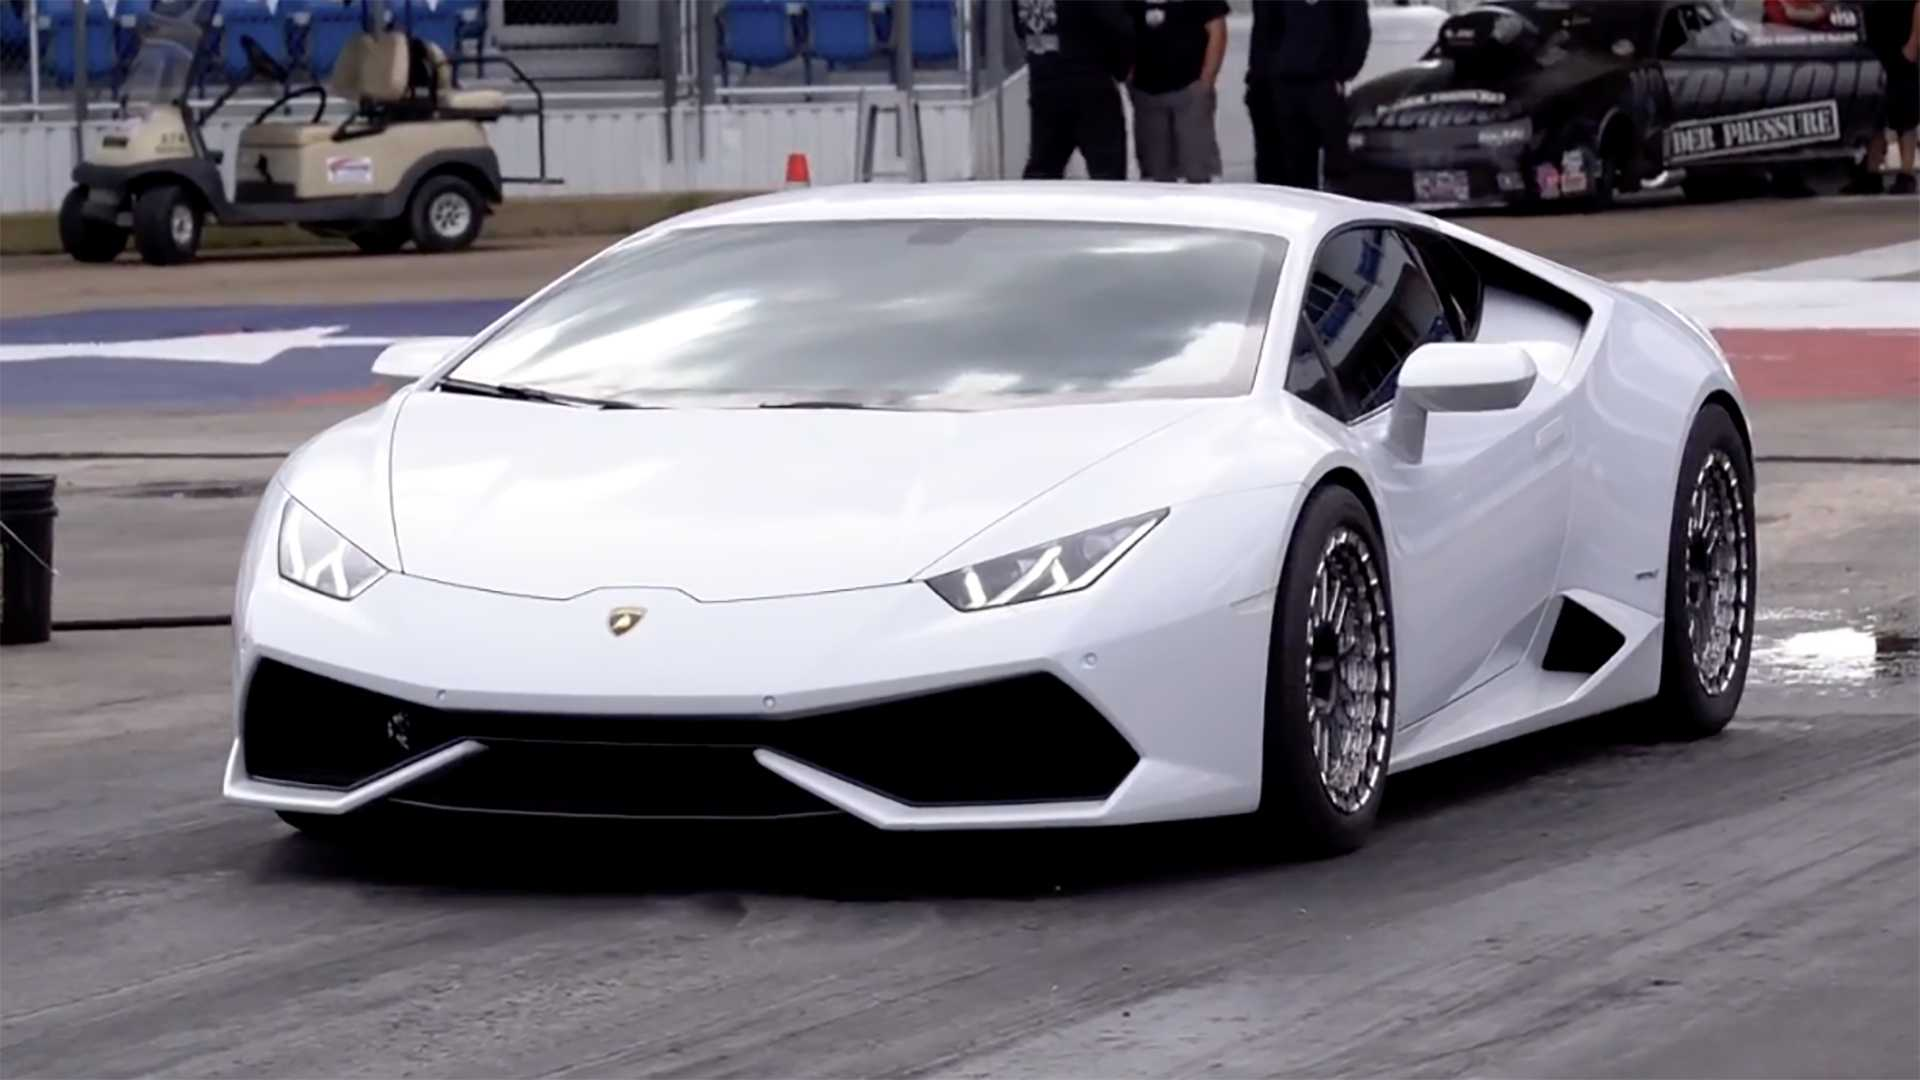 Lamborghini Huracan Horsepower >> Watch 2 000 Hp Lamborghini Huracan Do Sub 8 Second Quarter Mile